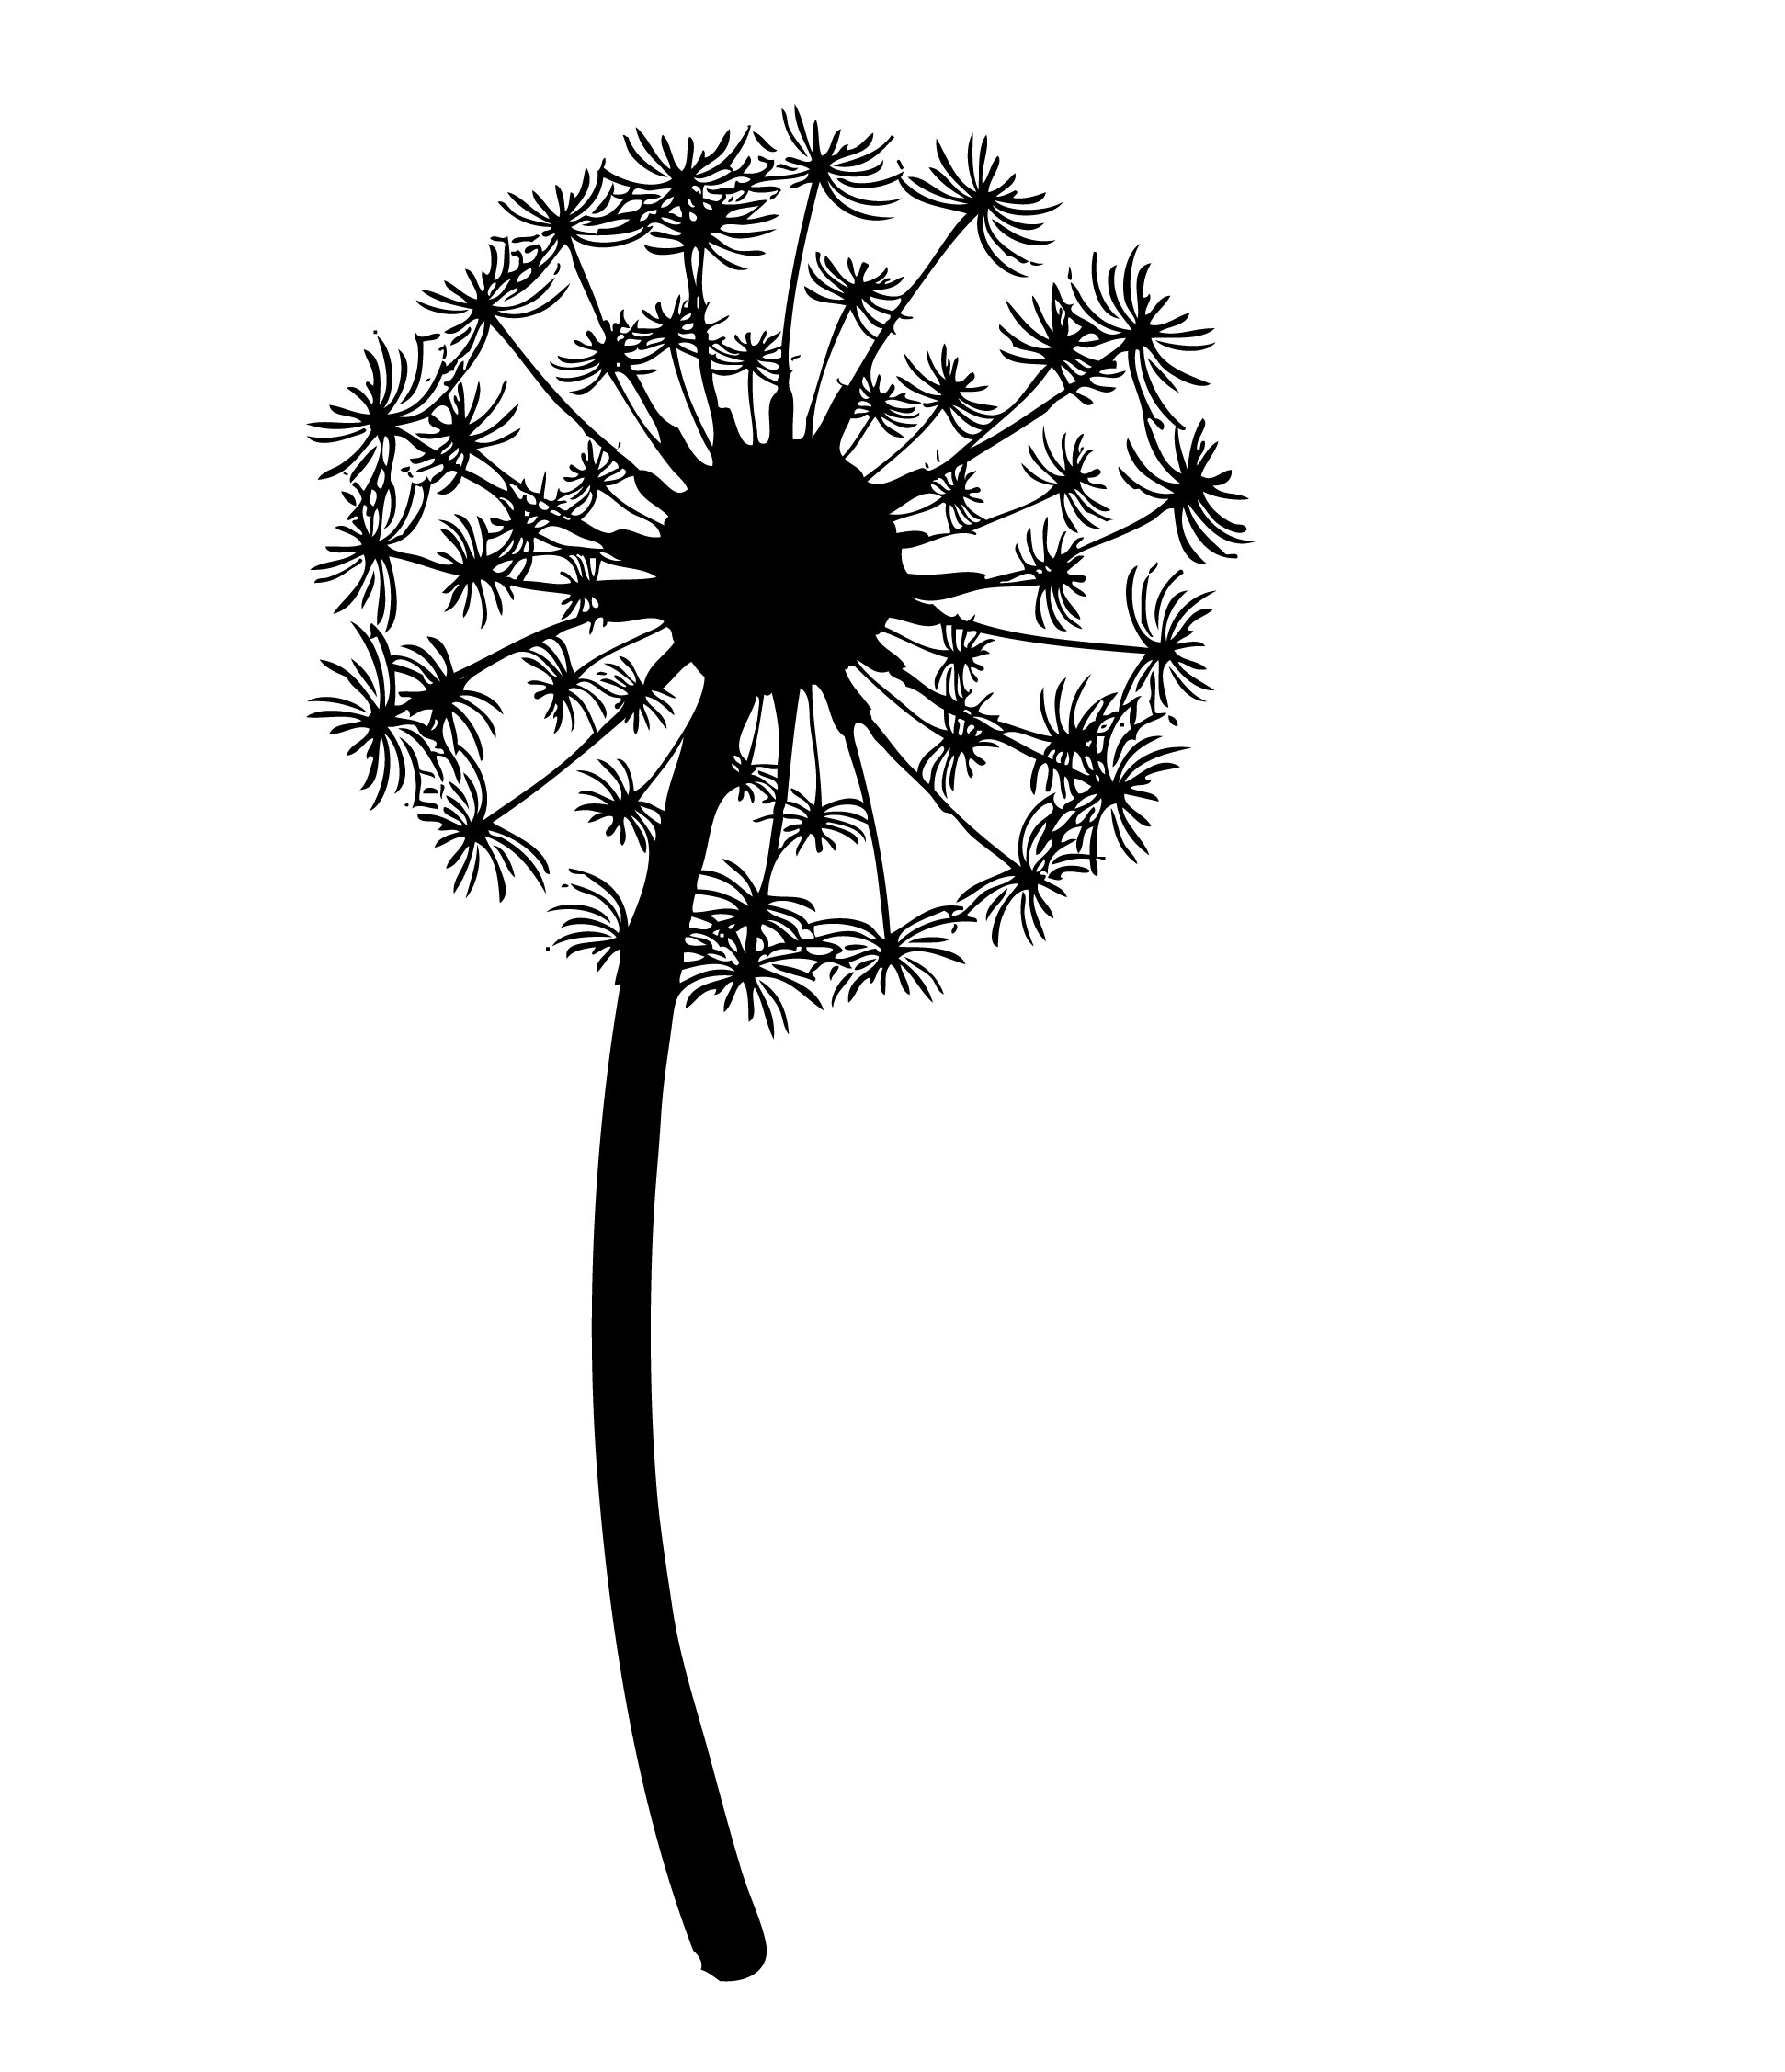 Dandelion Outline Clipart - Clipart Kid